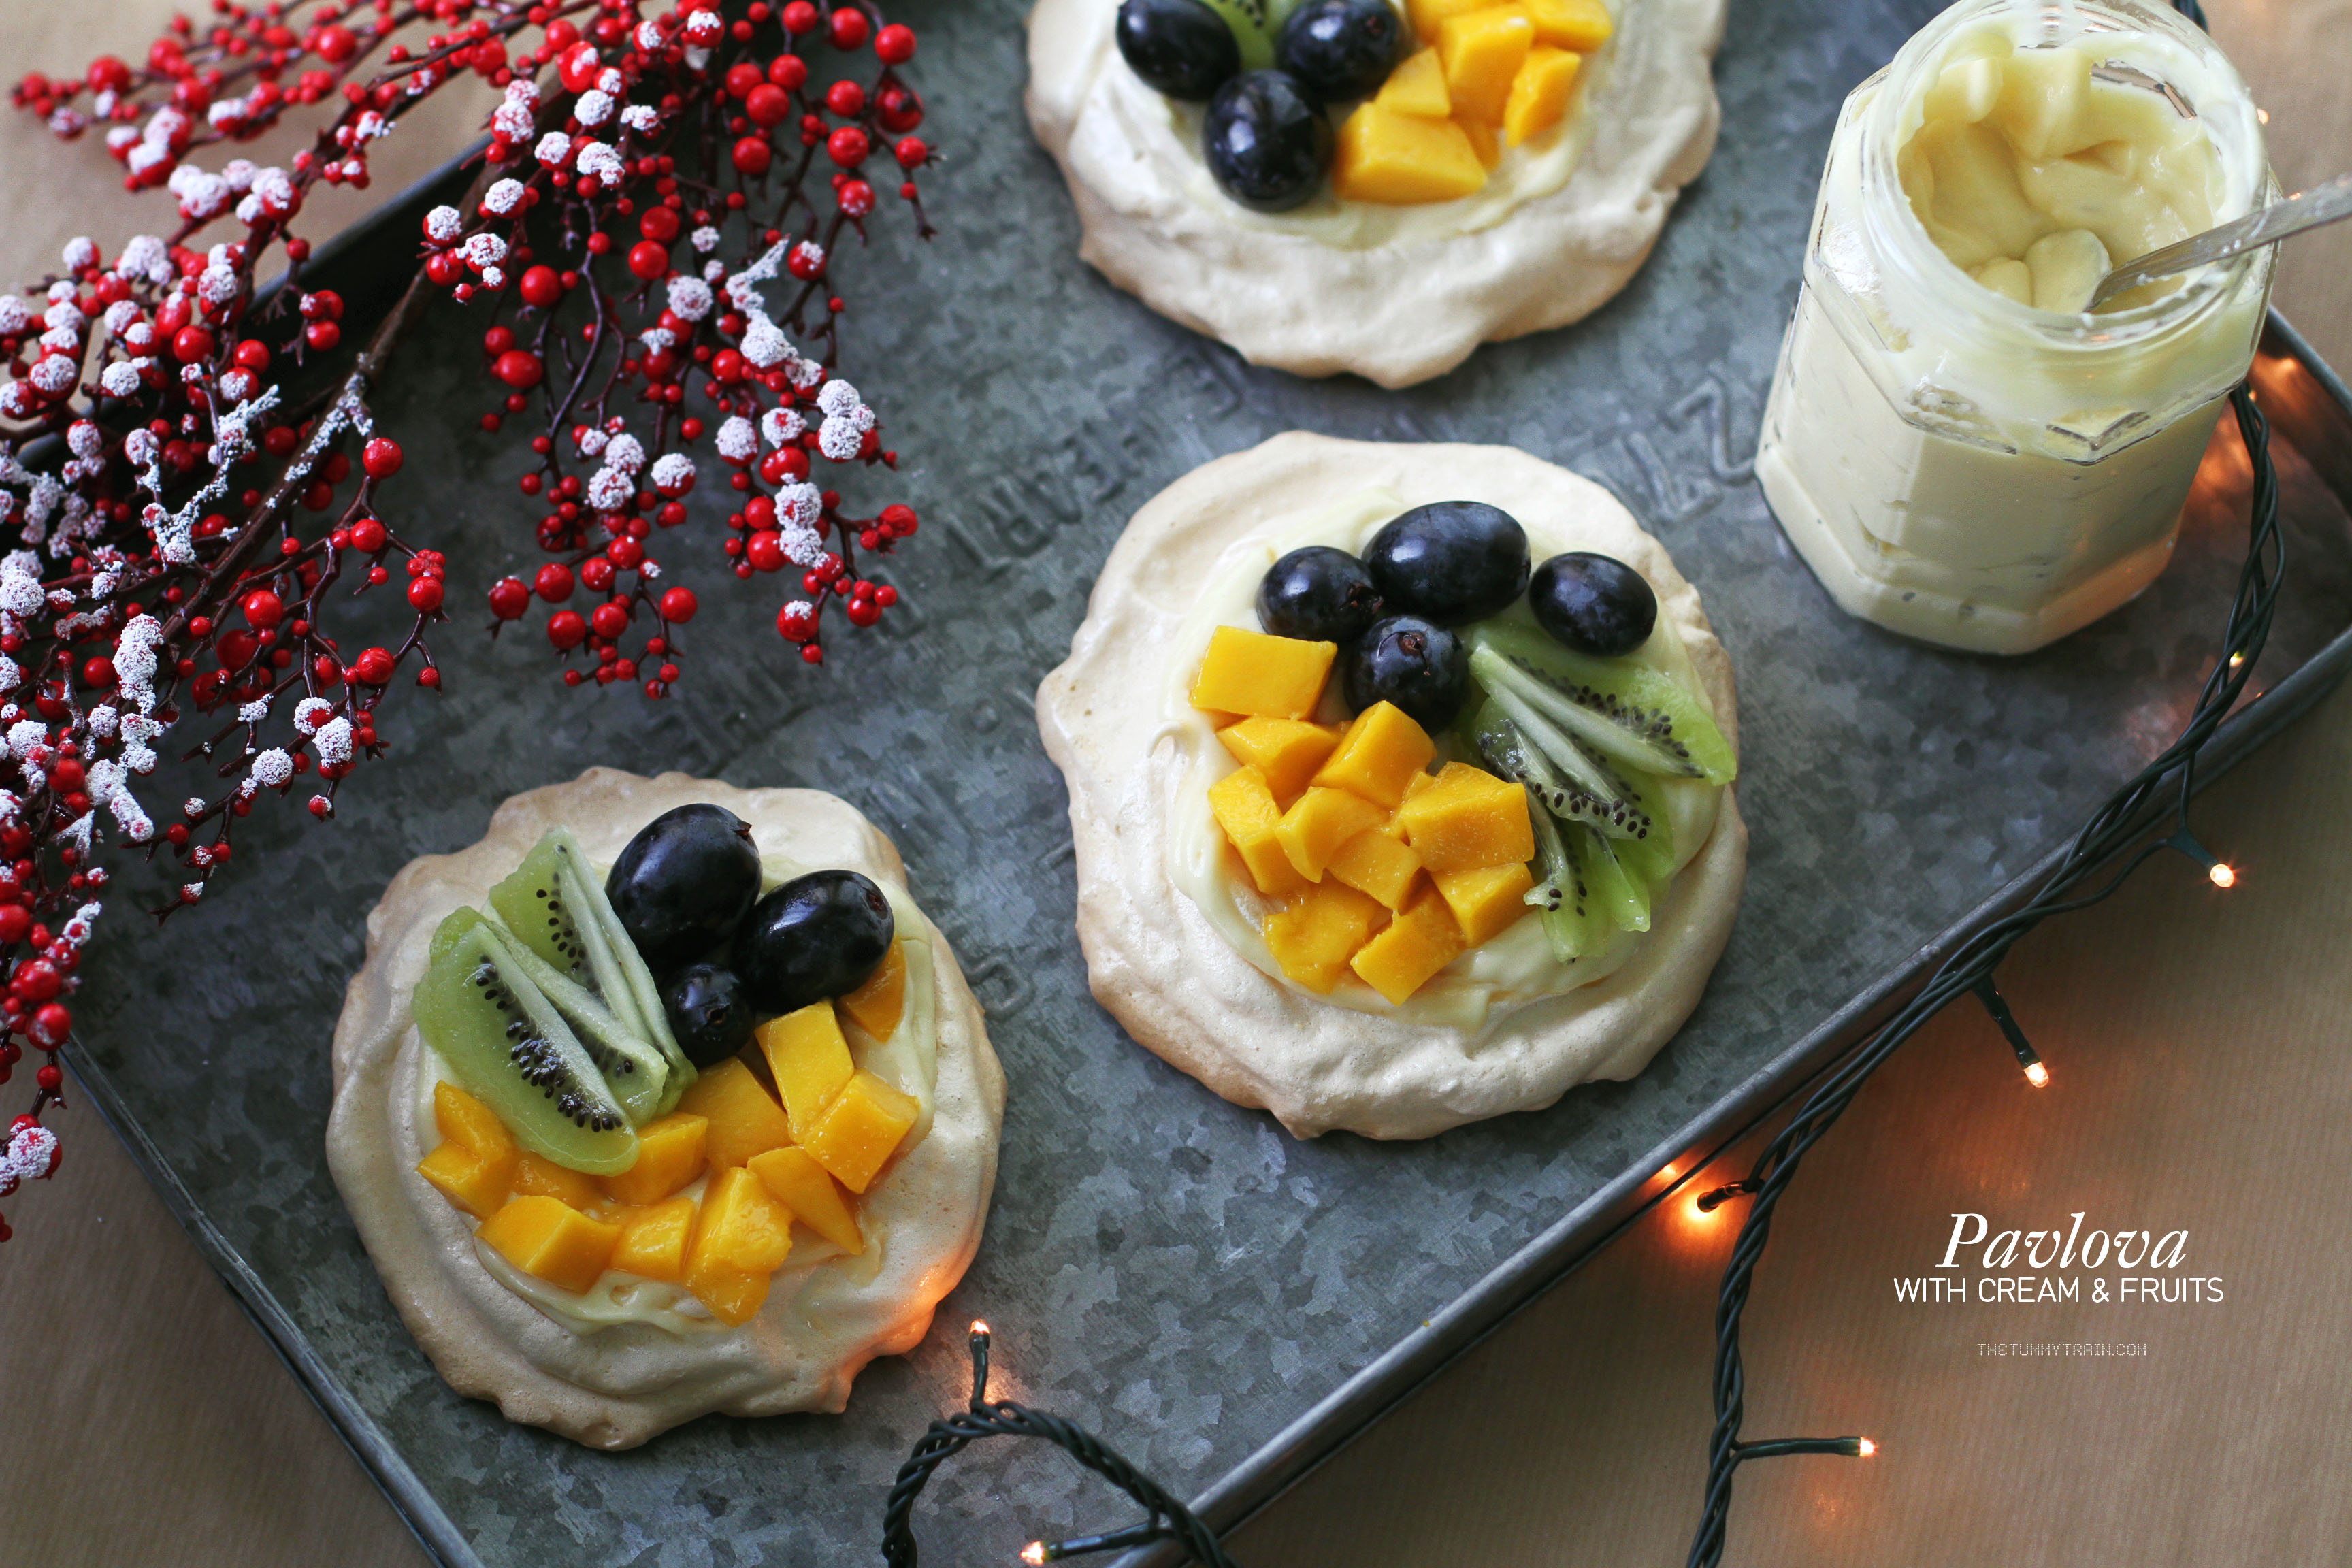 Pavlova 1 - Pavlova topped with cream and fruits make for a beautiful Christmas dessert [VIDEO]